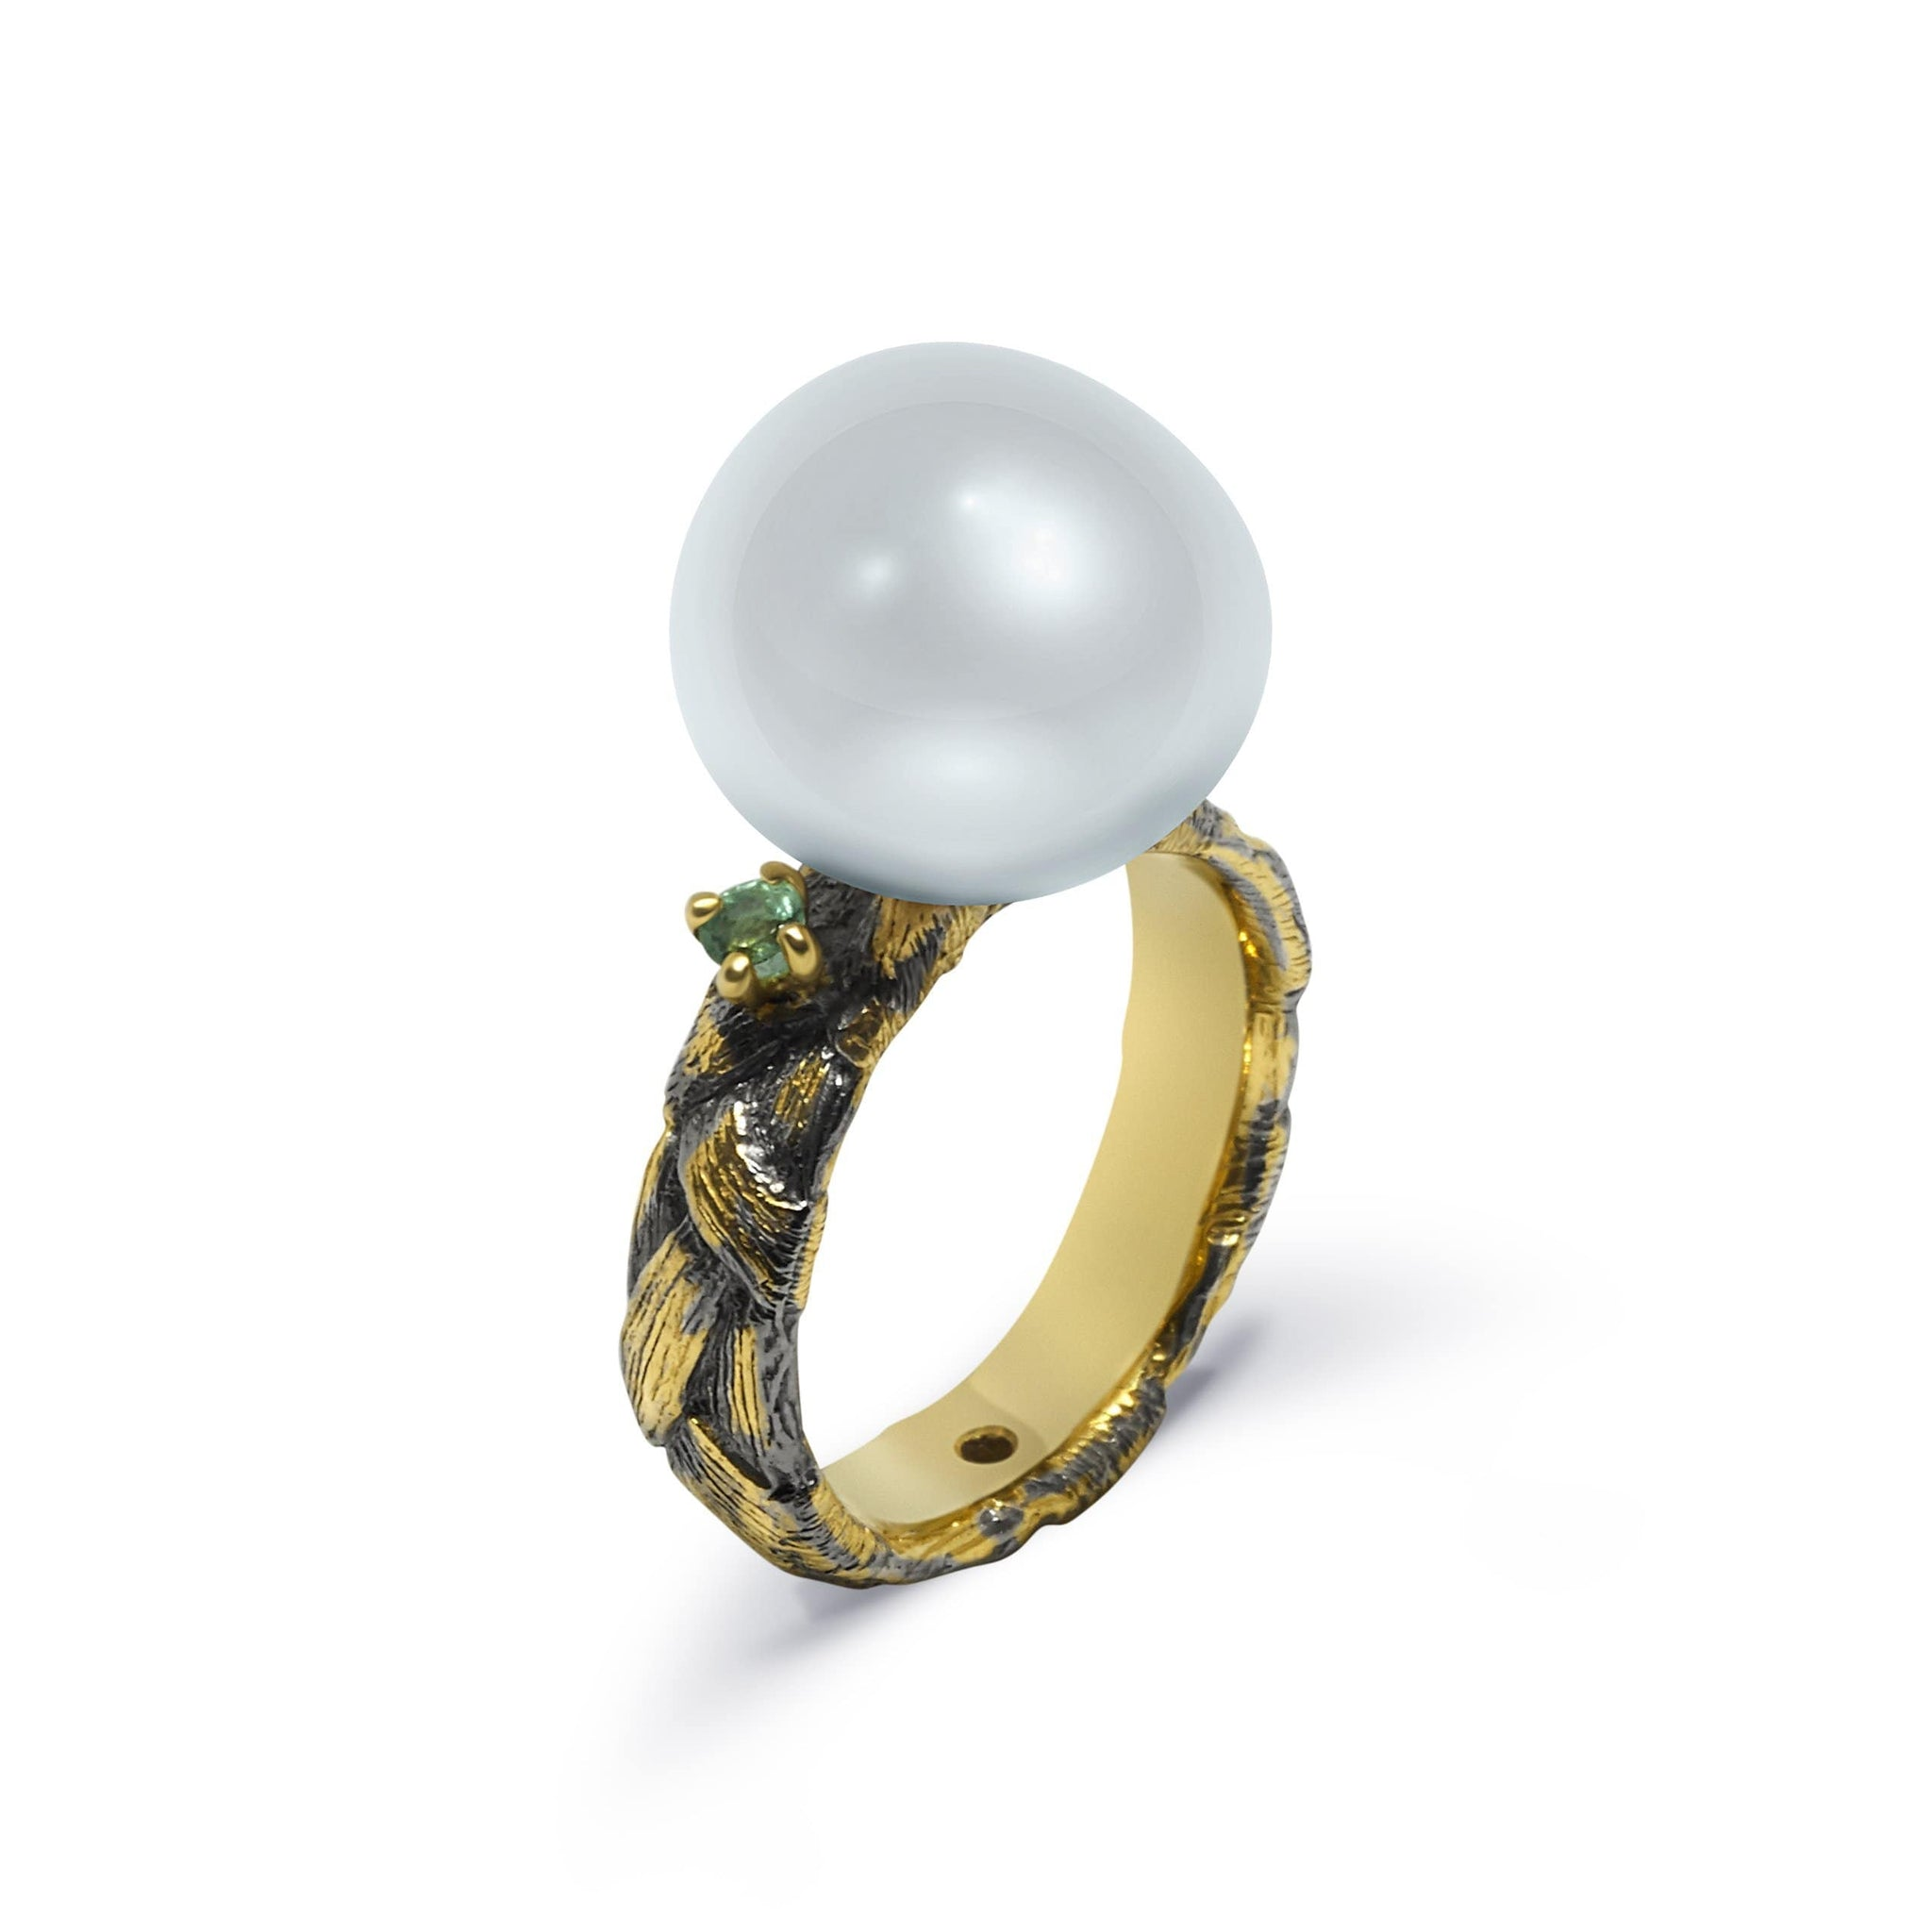 Unique Spica with White Pearl and Two Emeralds - Rara Jewelry